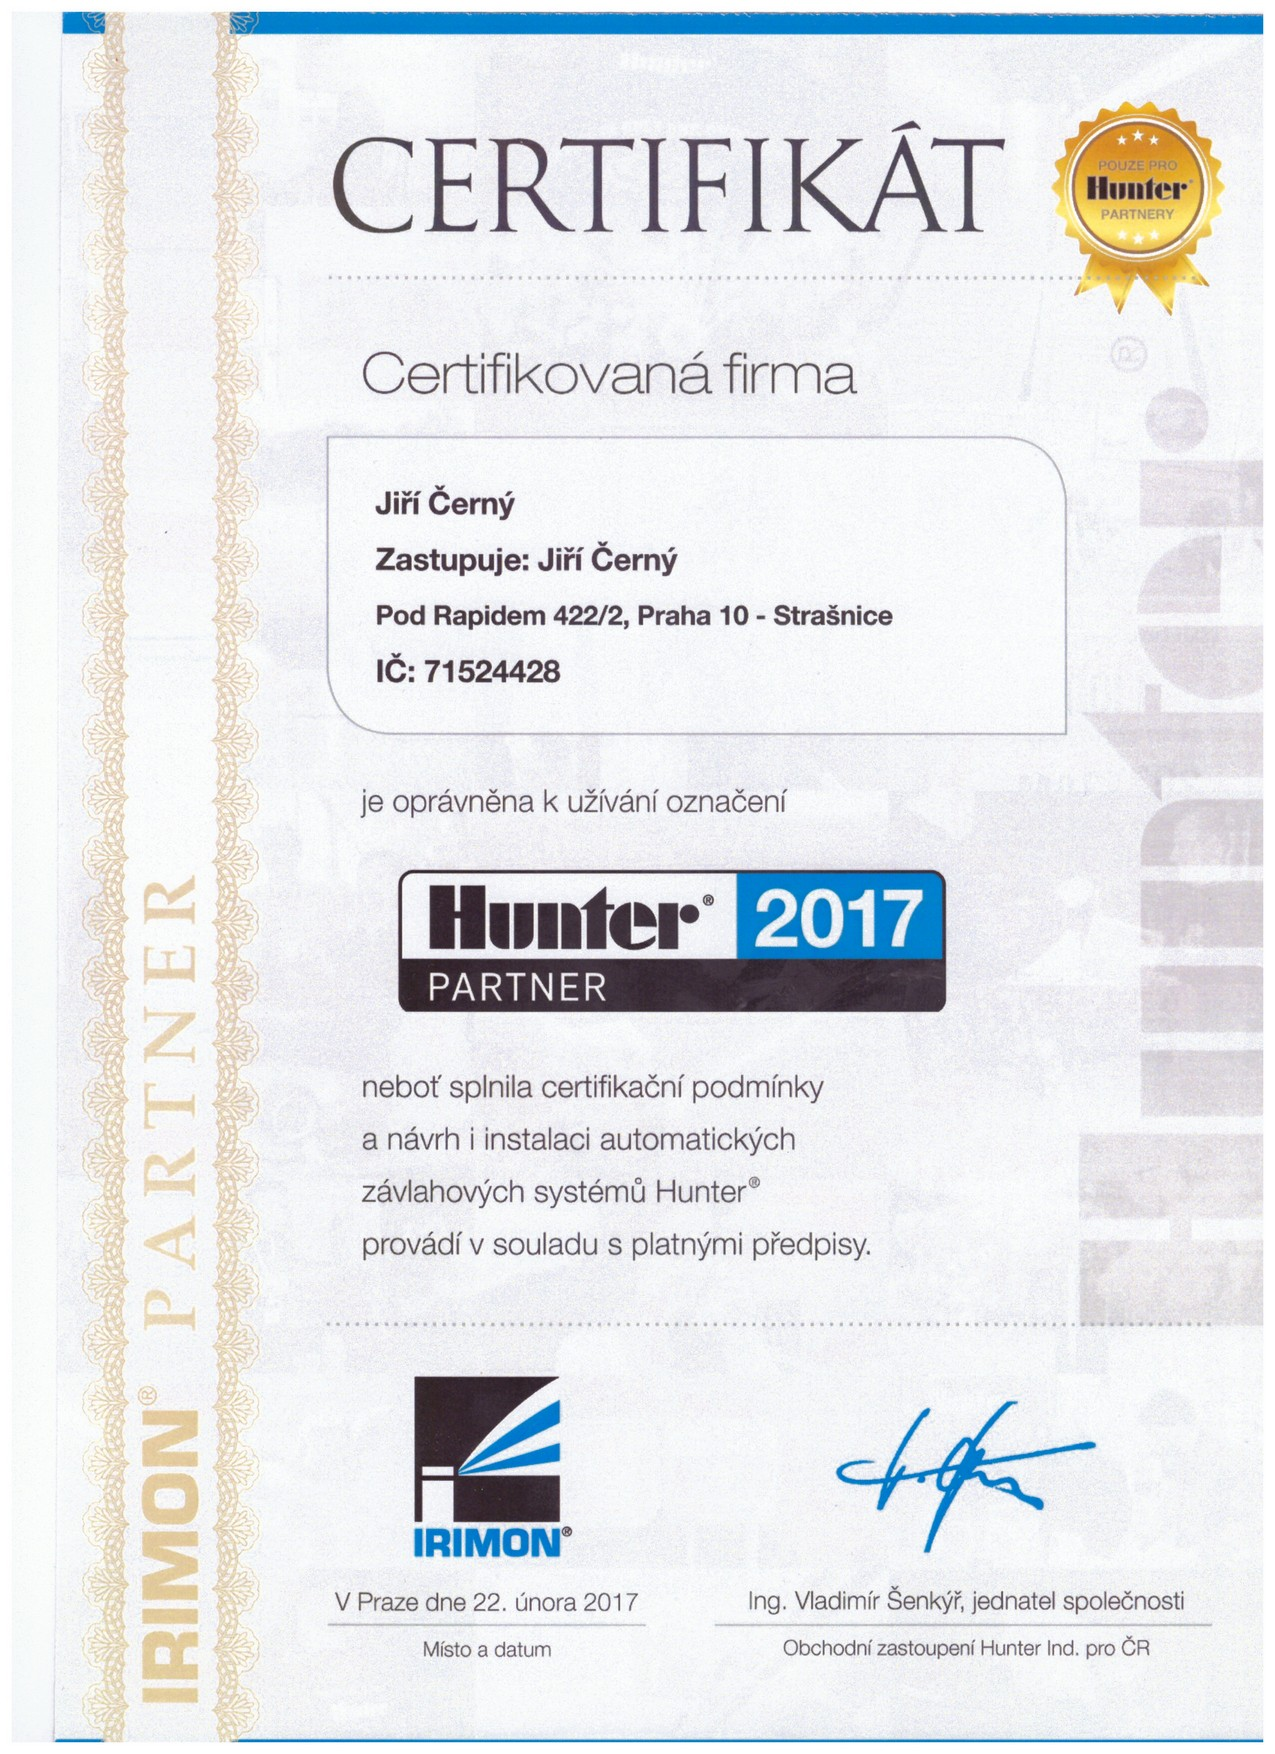 Certifikát Hunter partner 2017